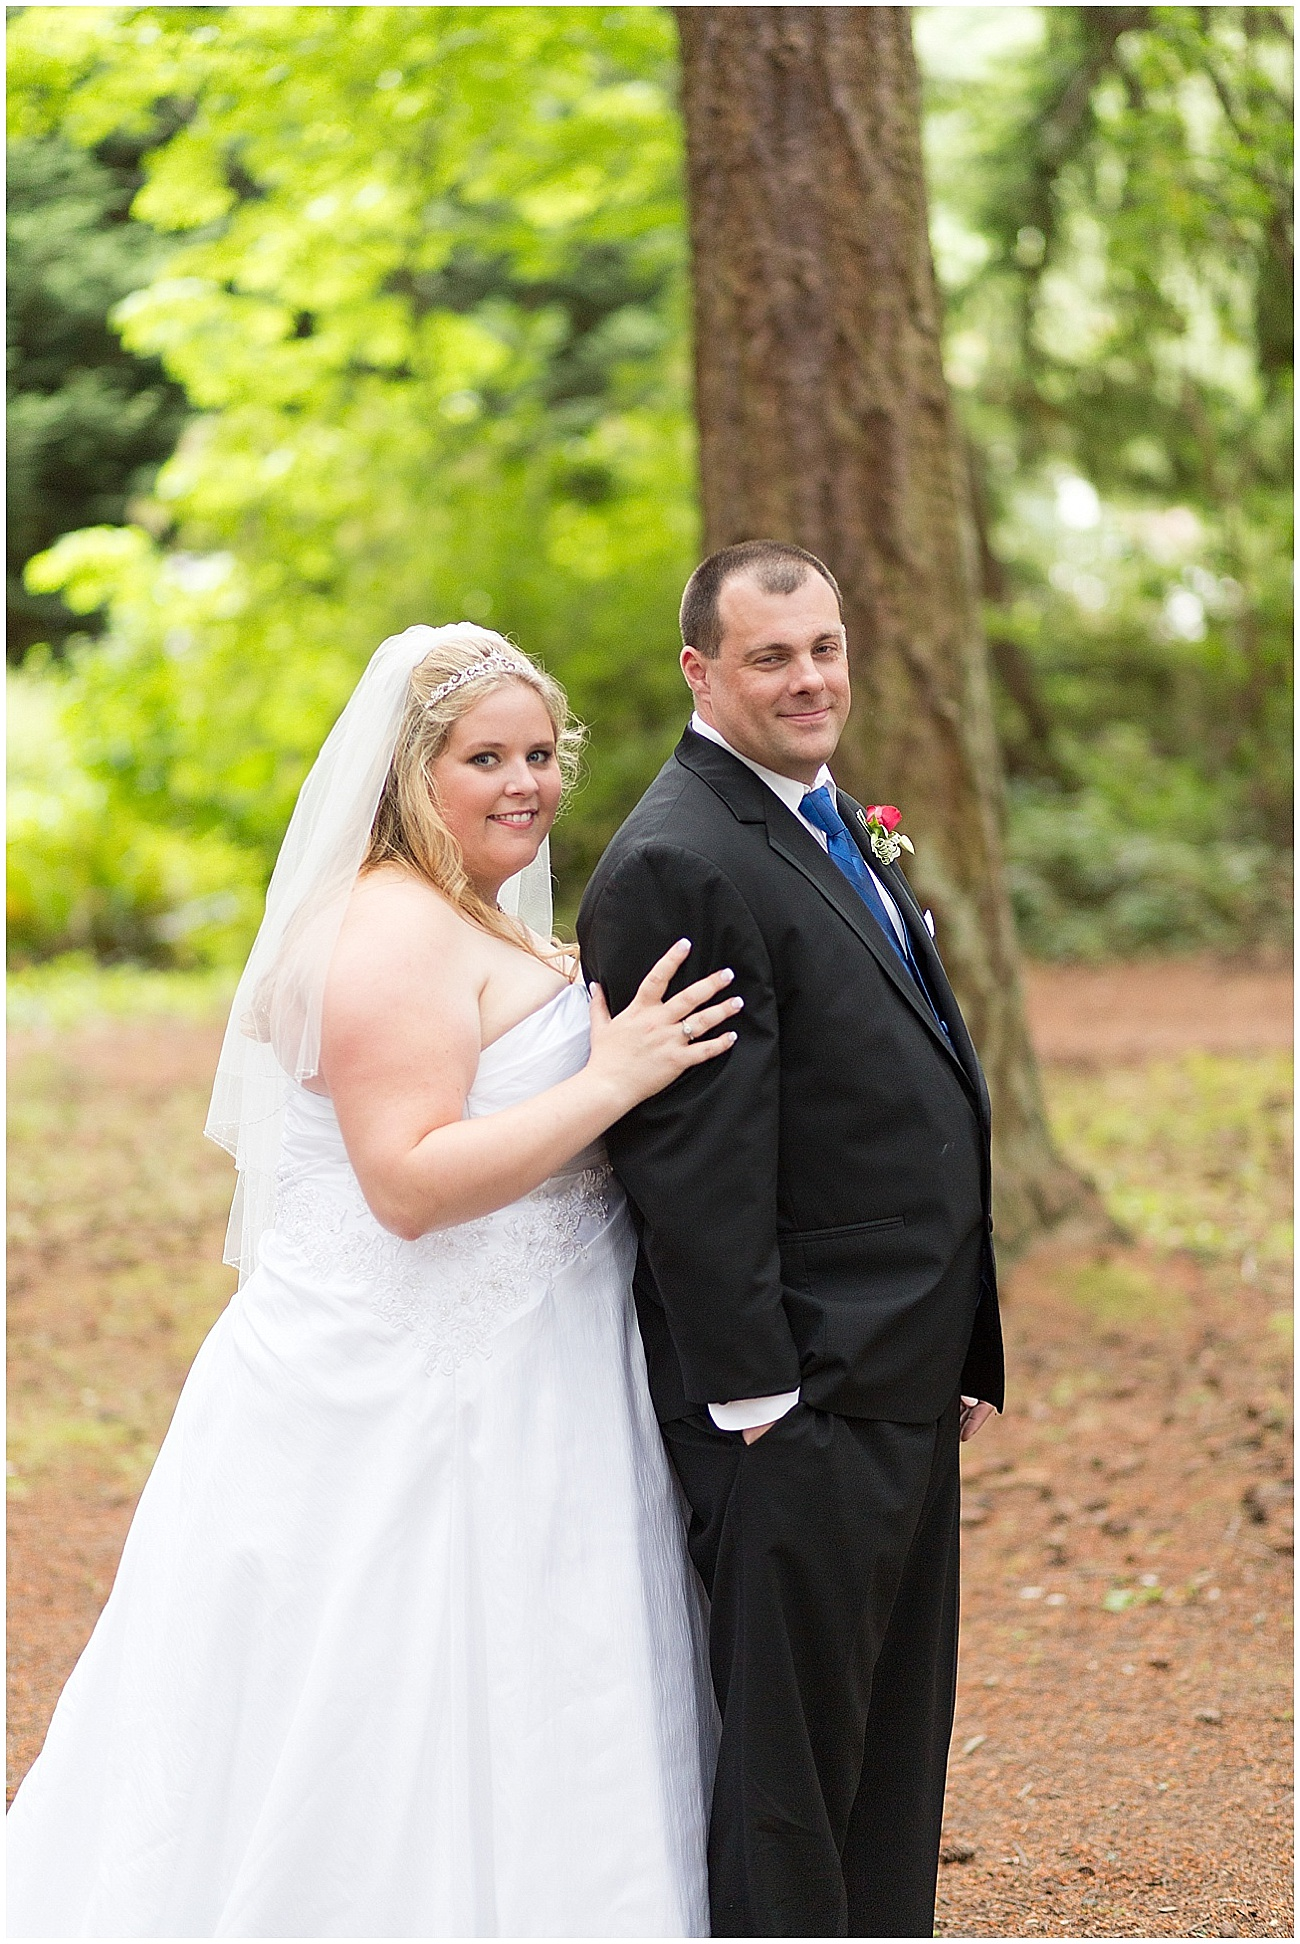 Hux_KitsapMemorialPark_Wedding_0008